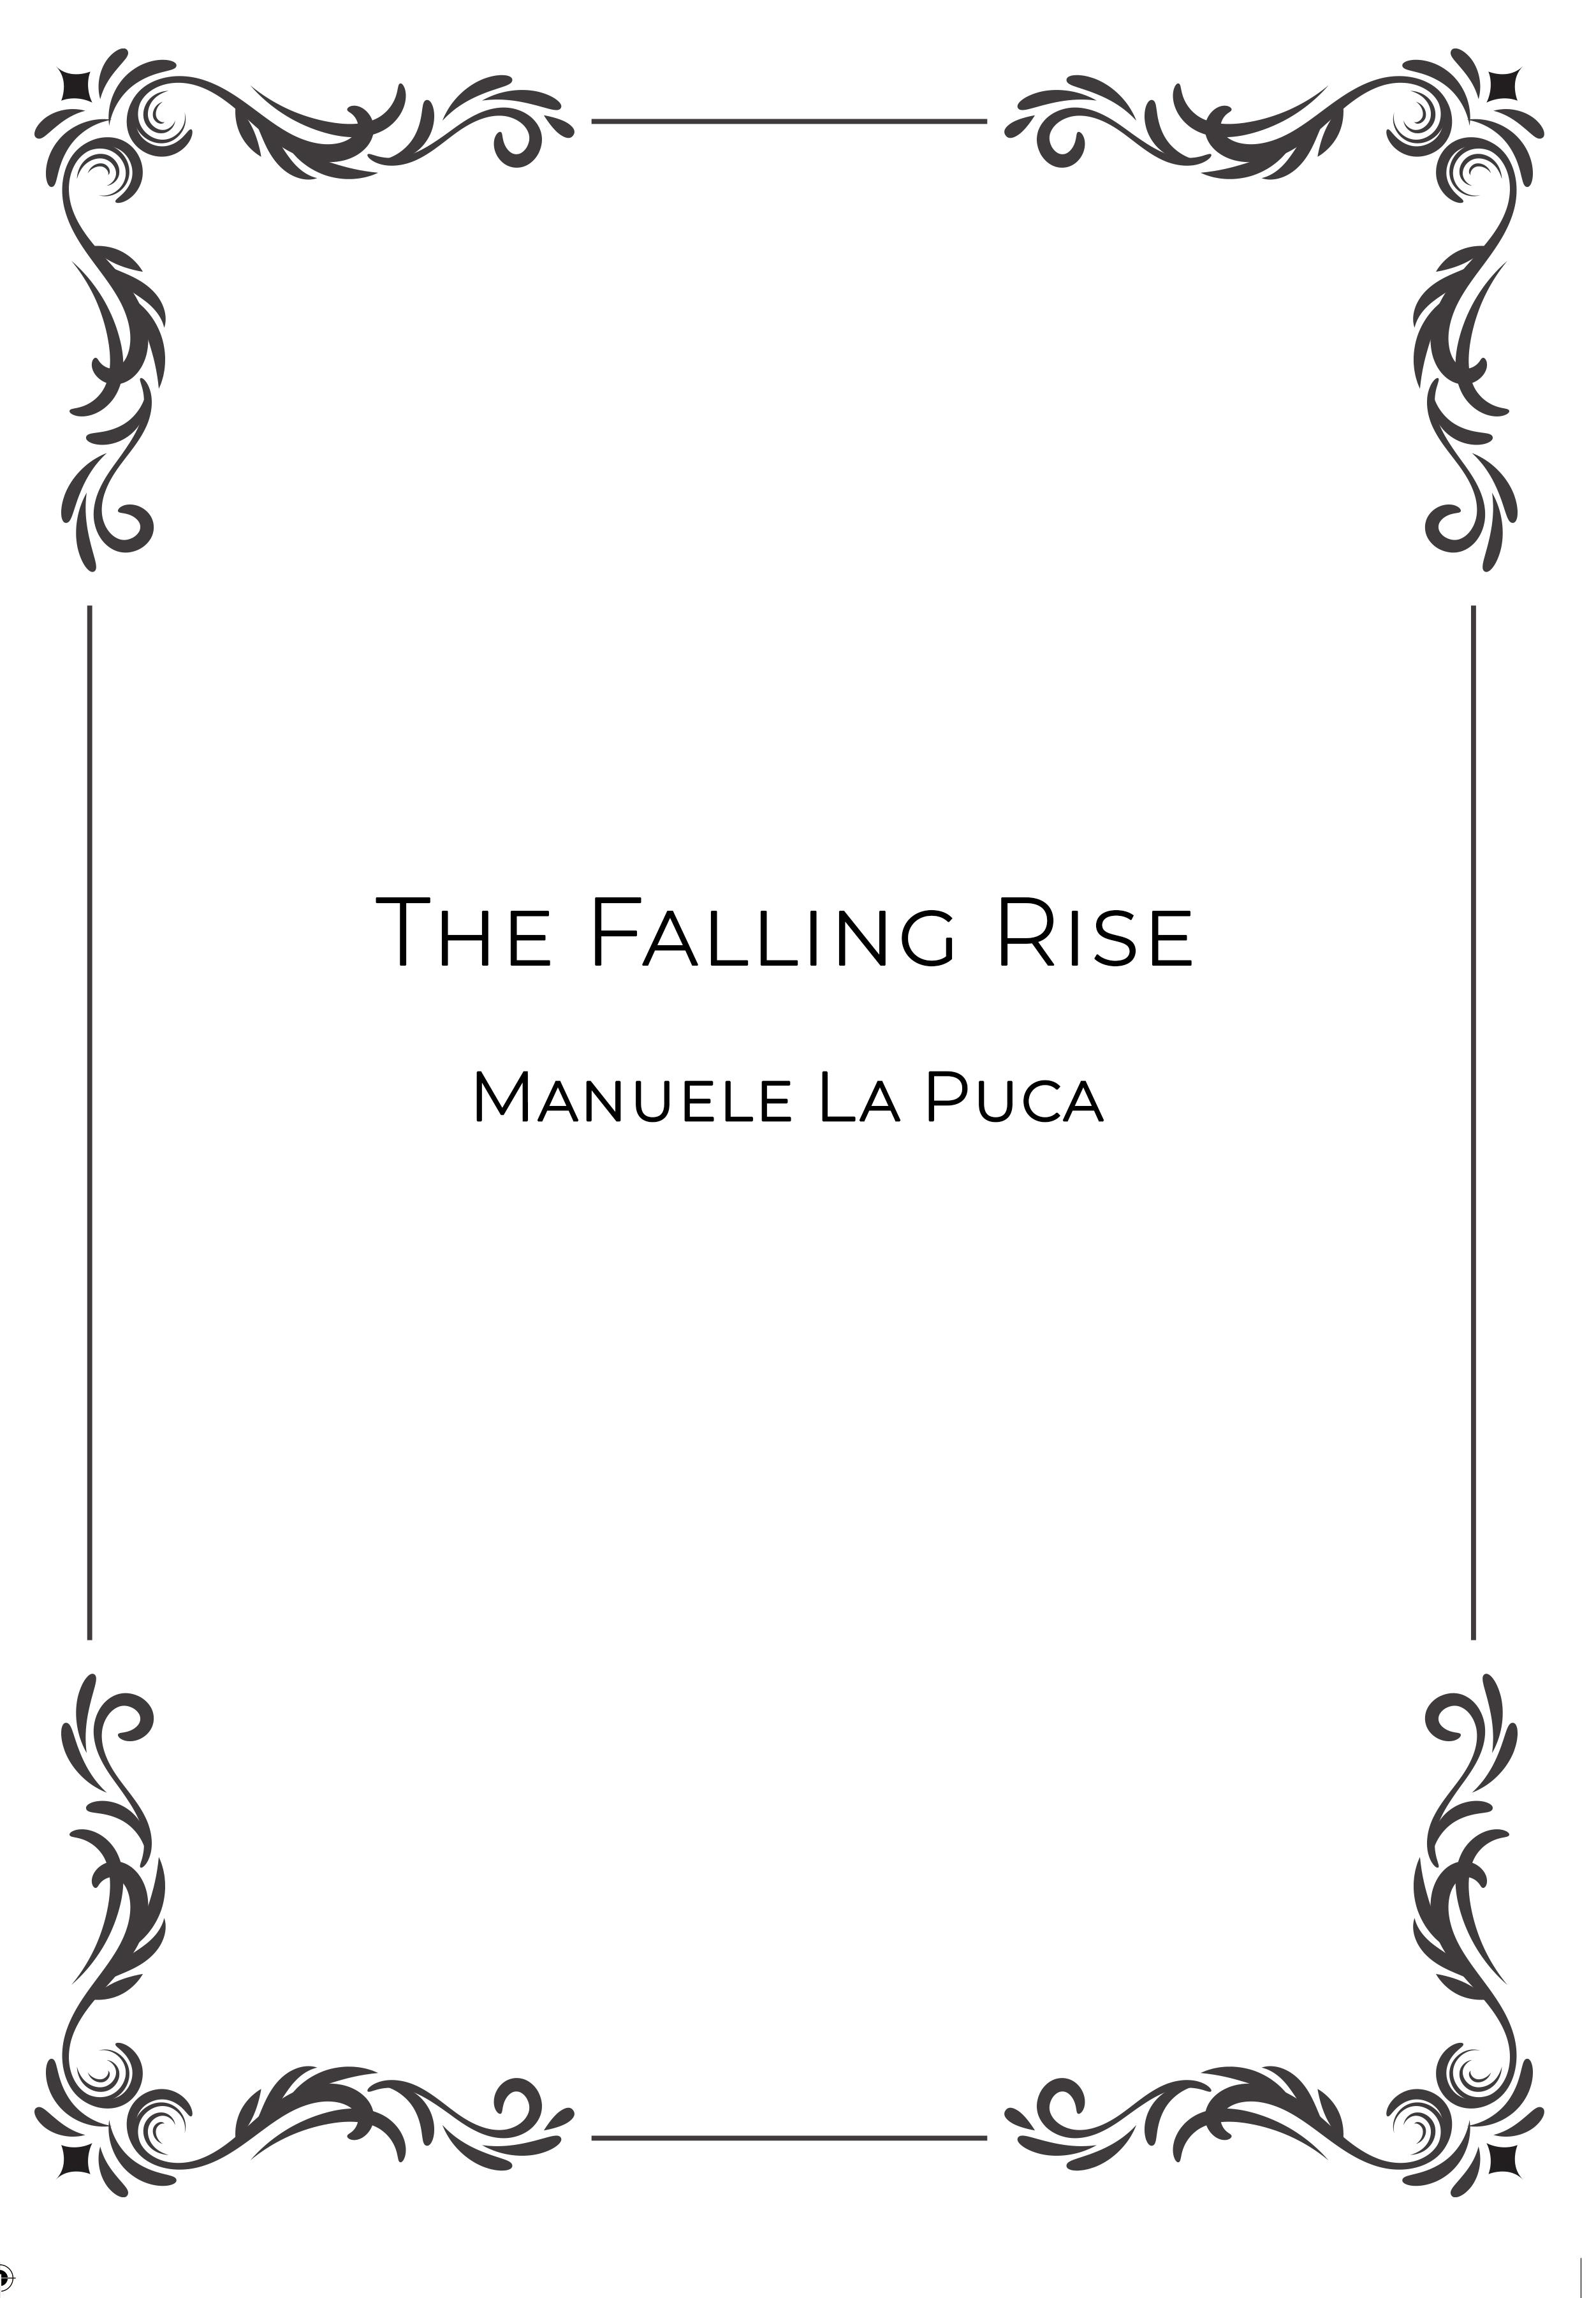 The falling rise